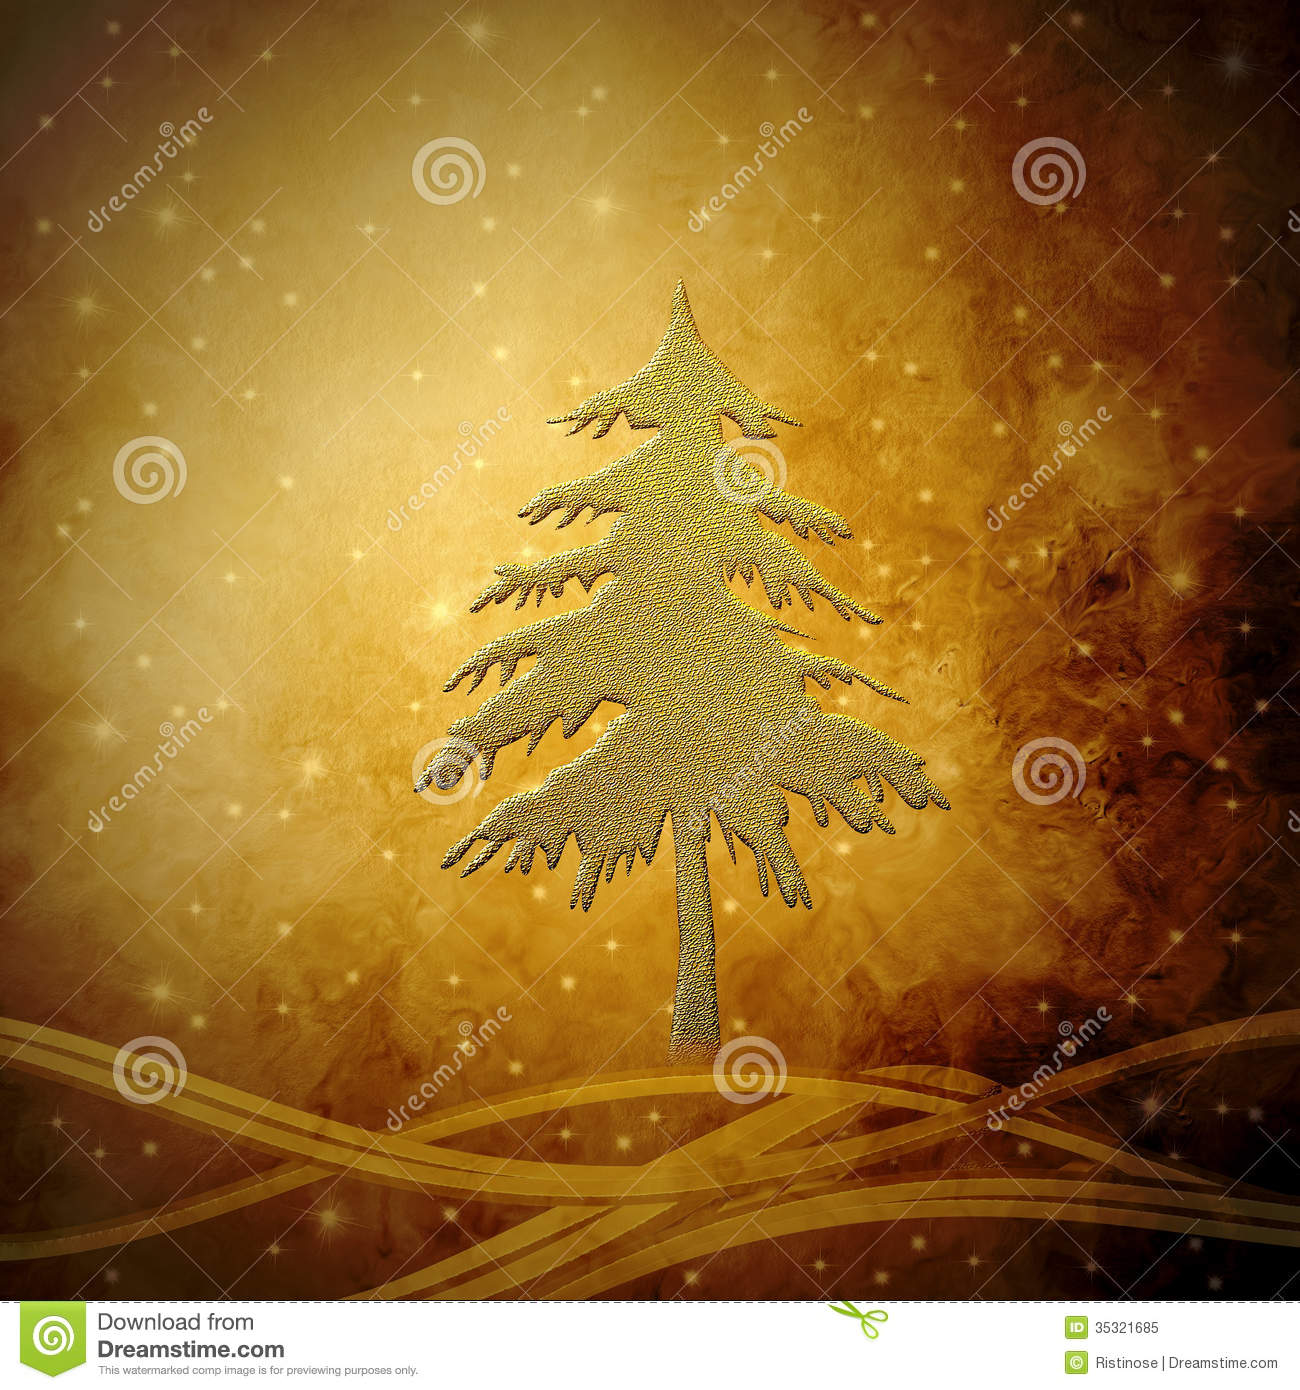 Golden Christmas Tree Christmas Greeting Card Background